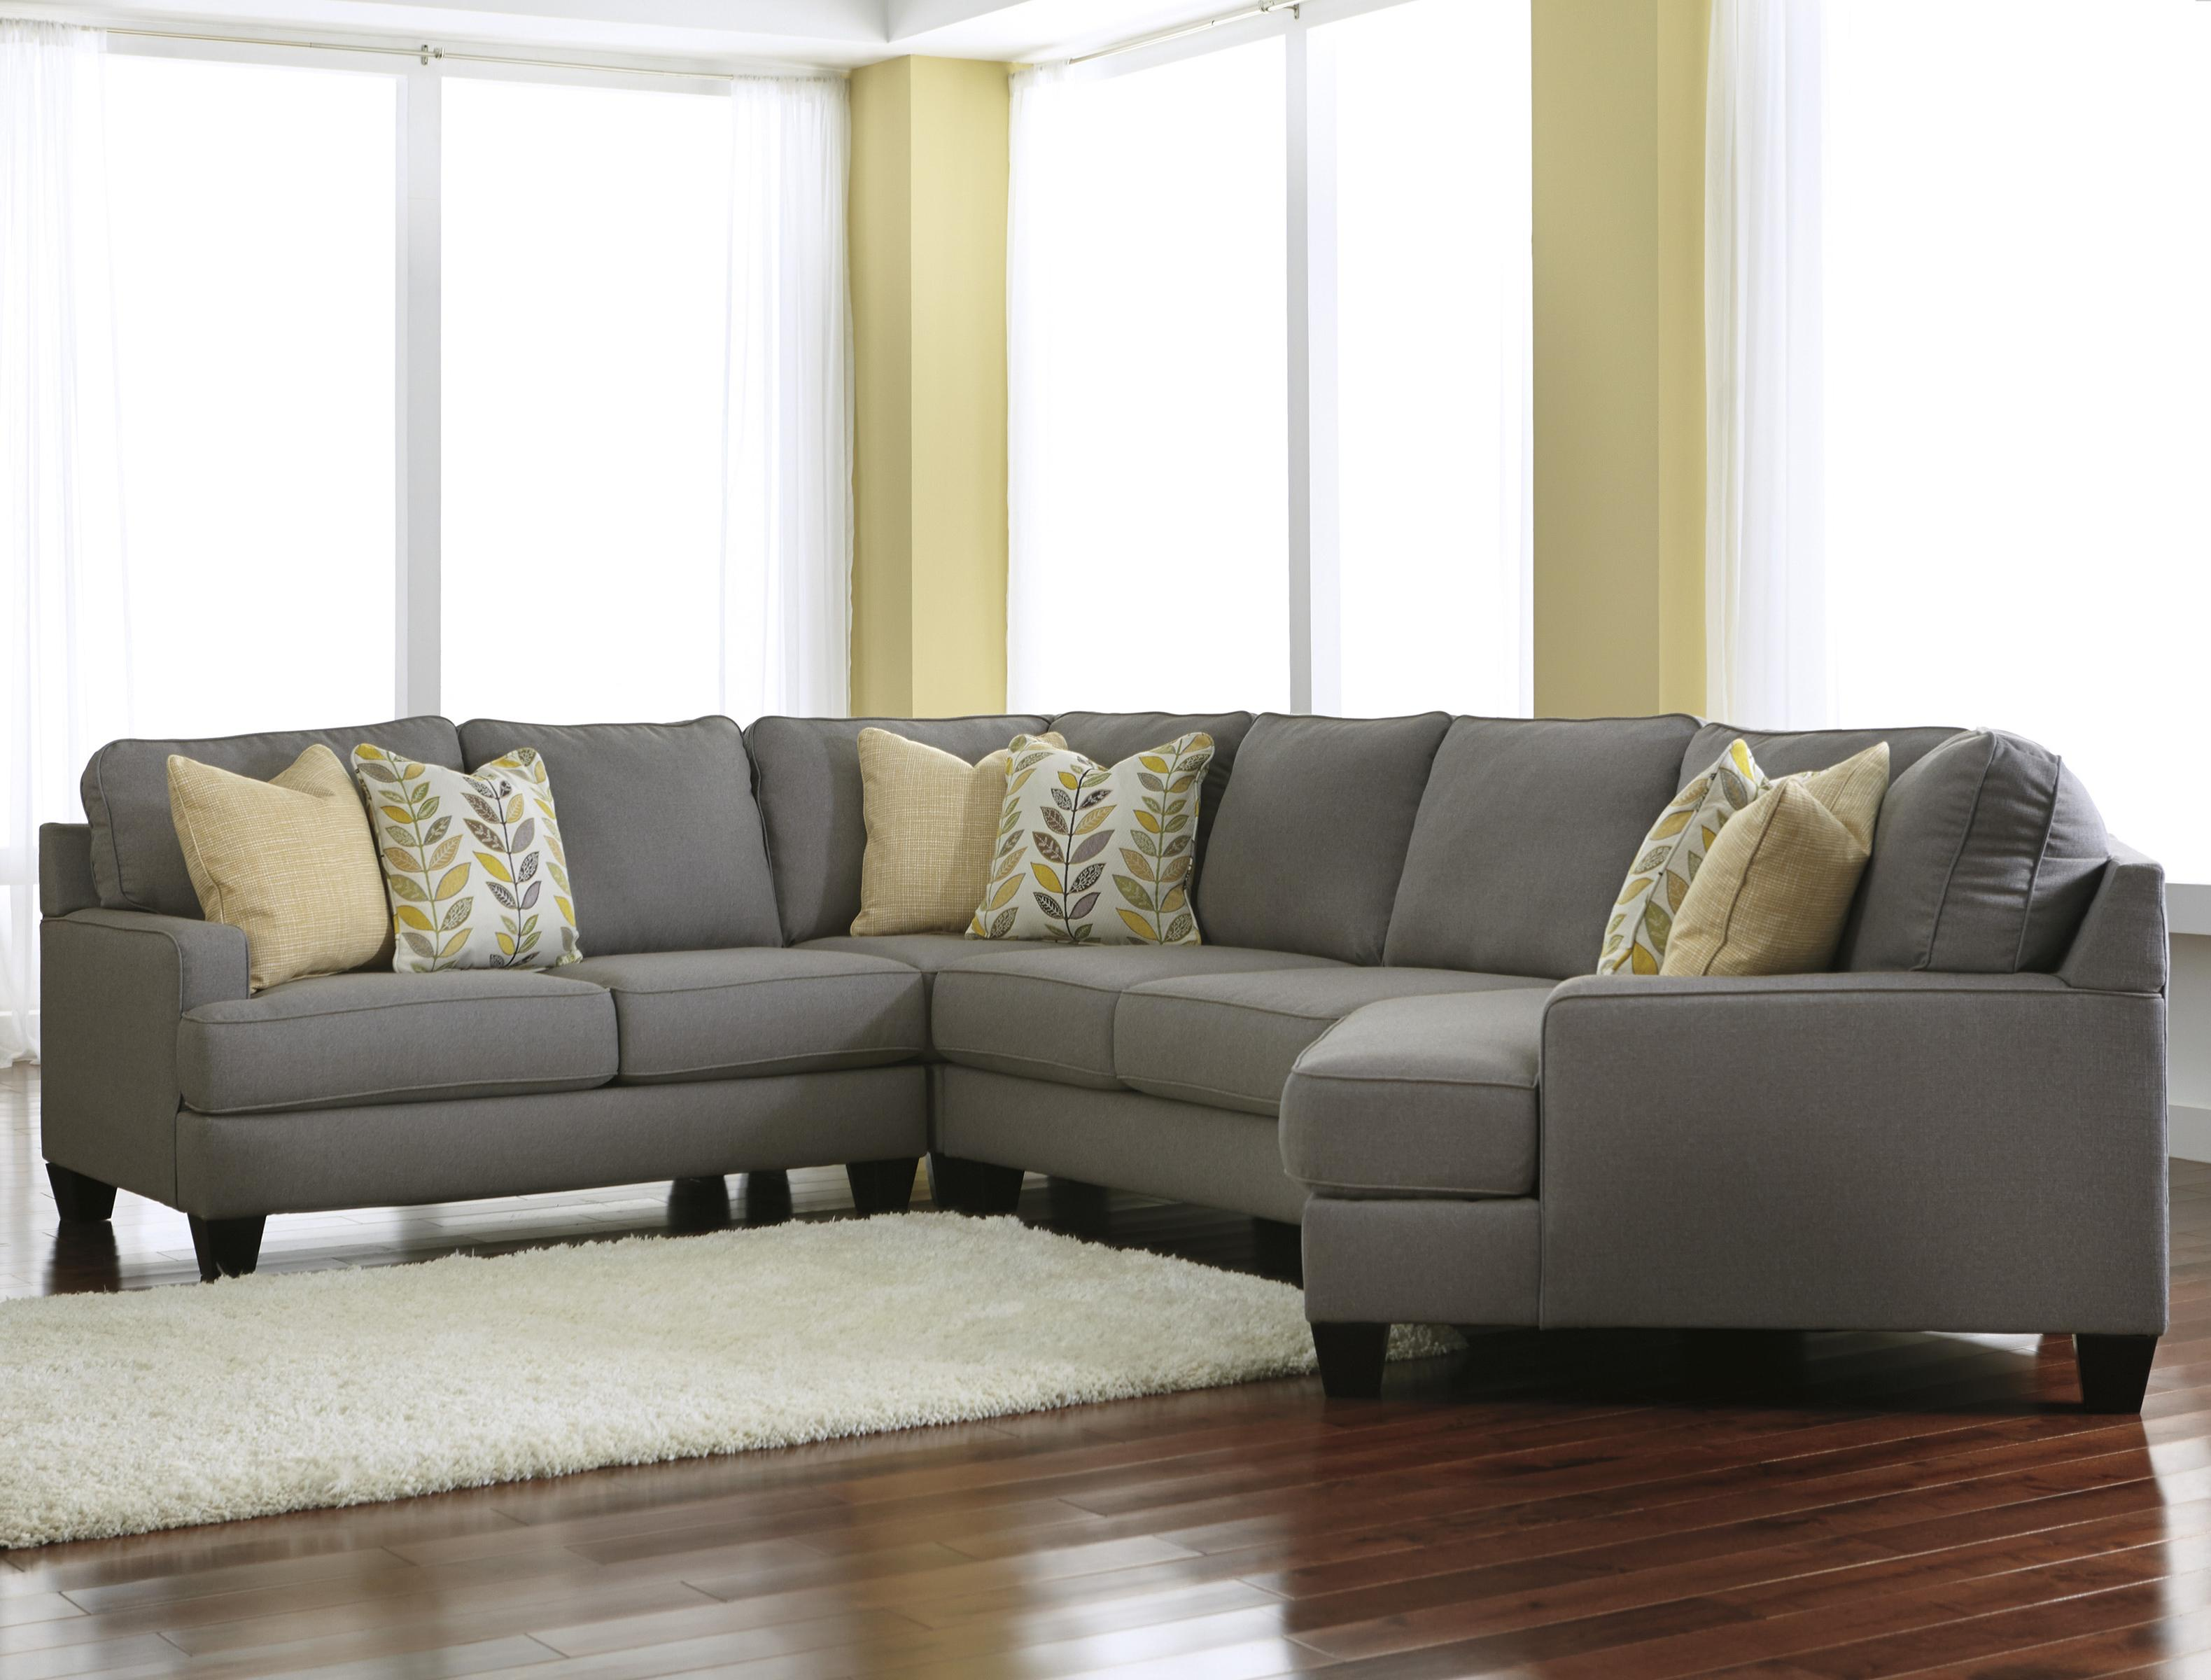 Modern 4-Piece Sectional Sofa With Right Cuddler